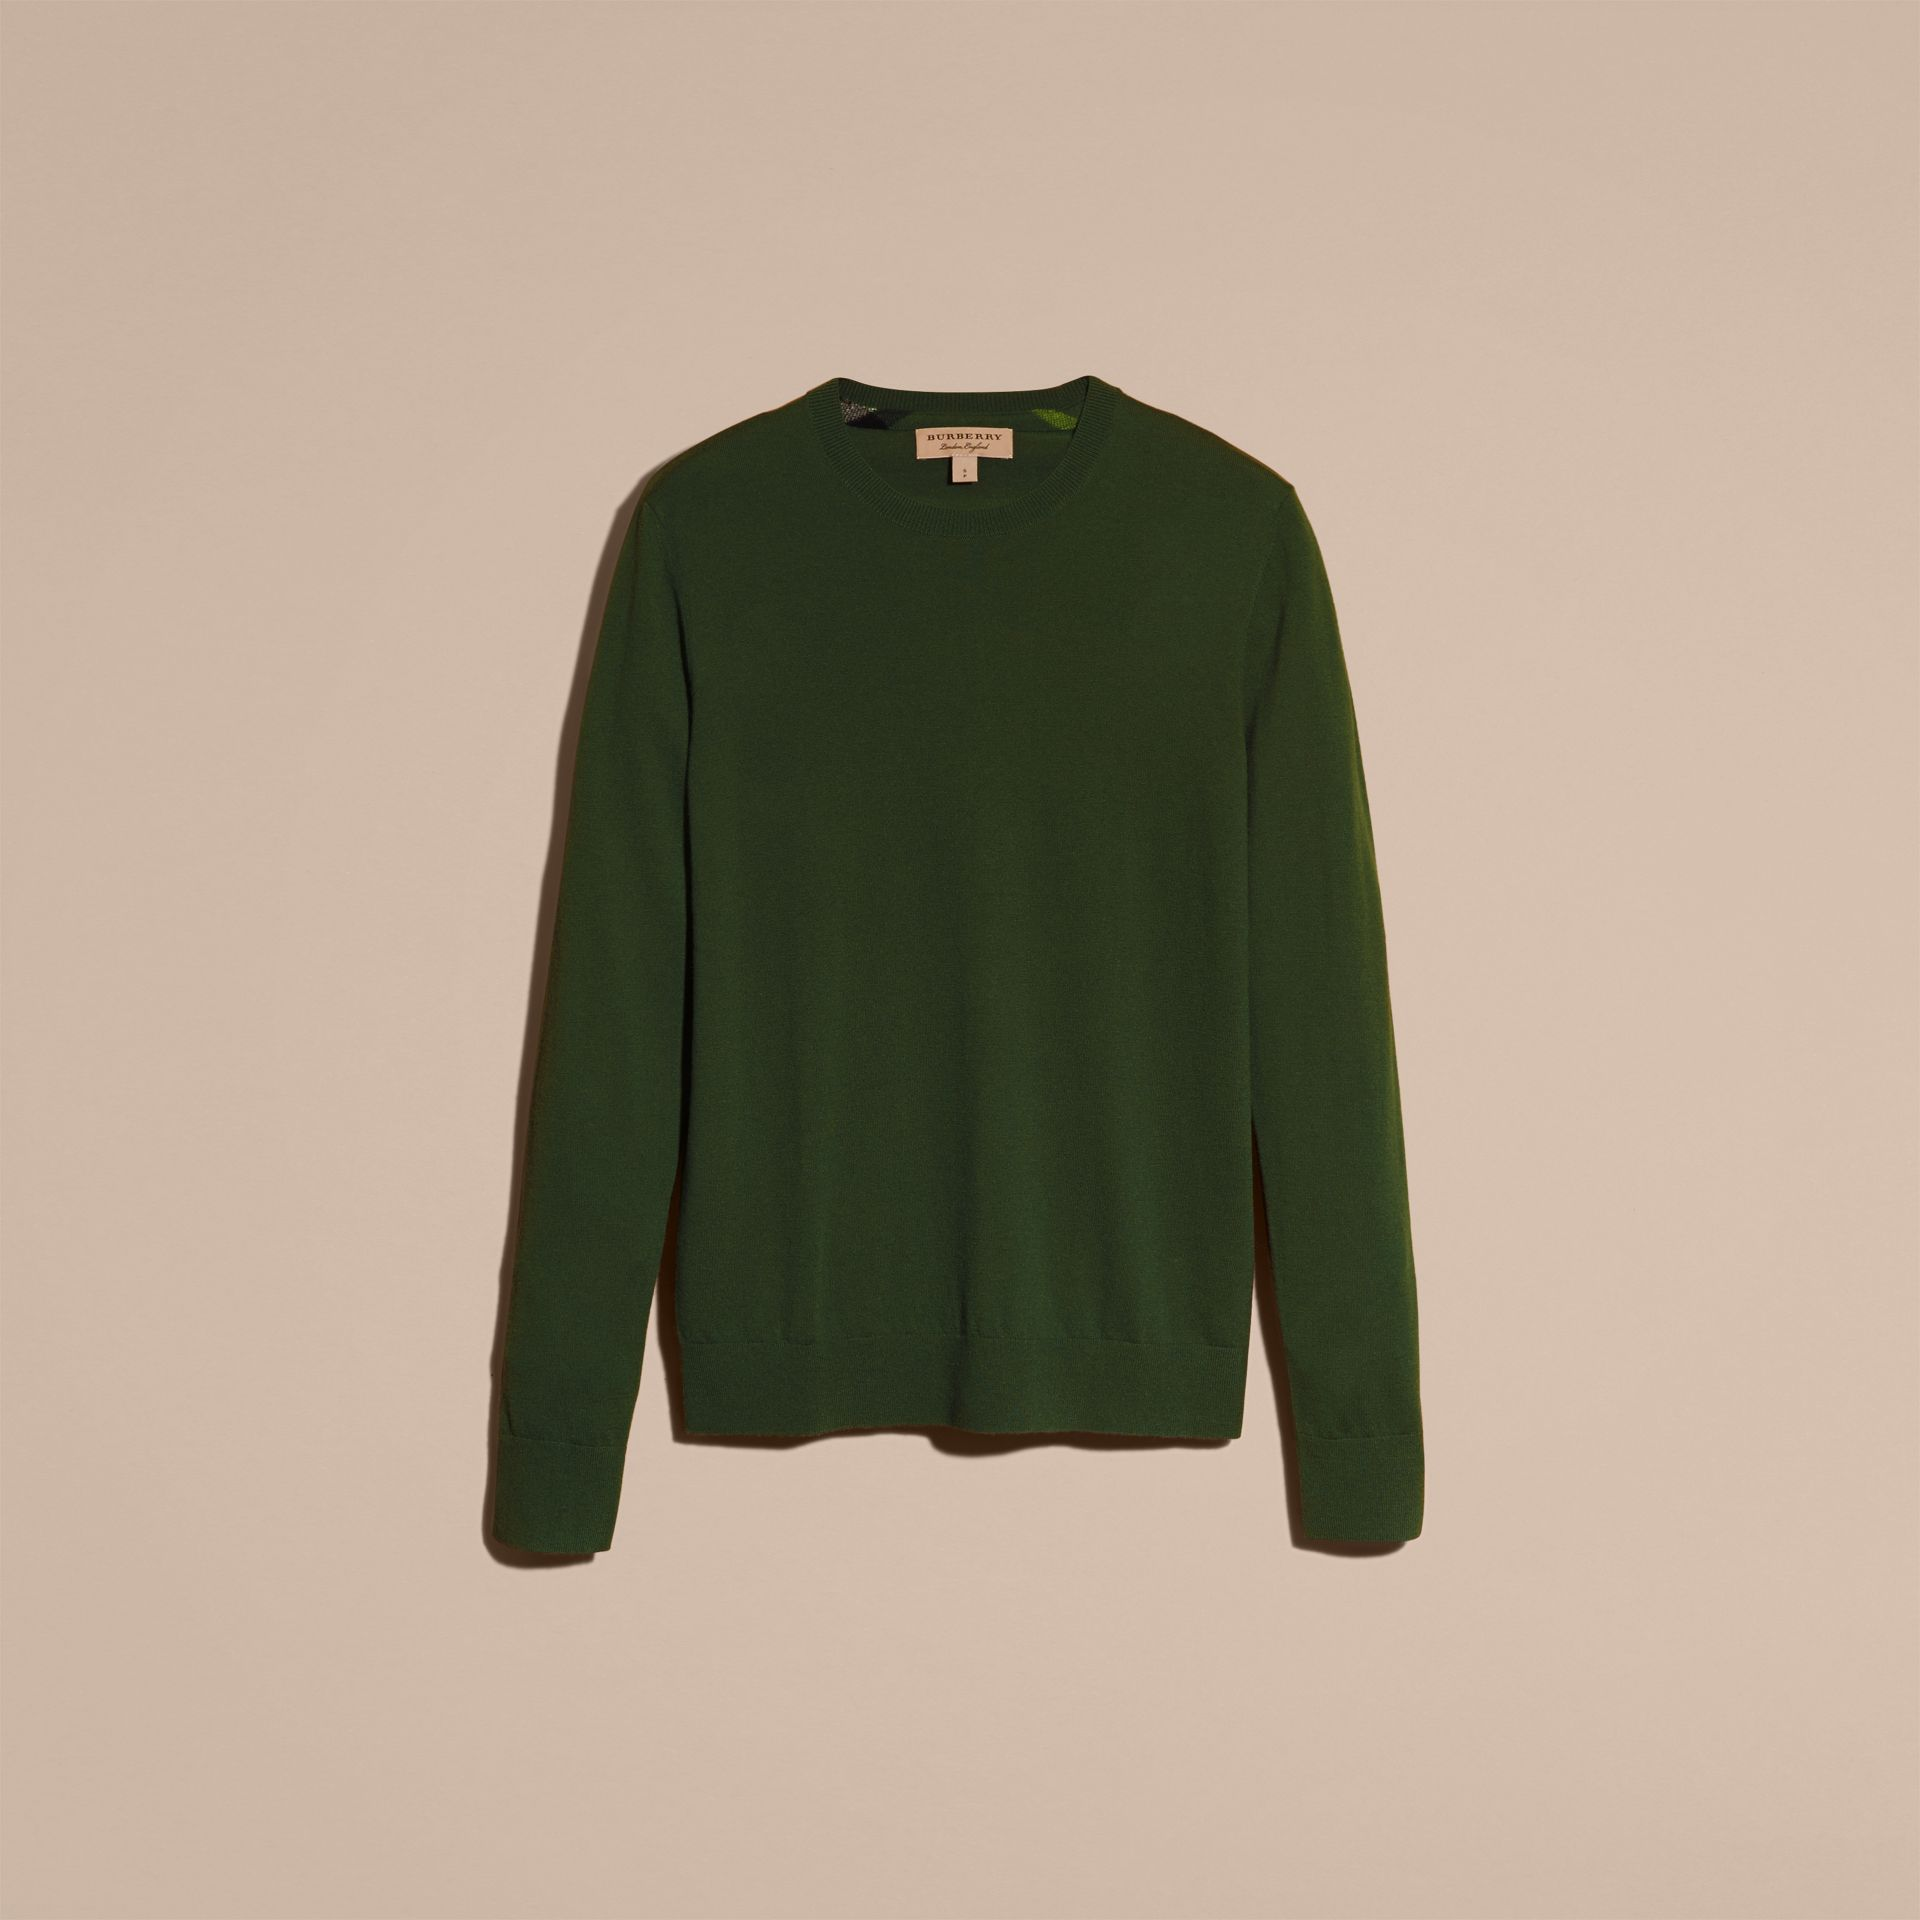 Olive green Lightweight Crew Neck Cashmere Sweater with Check Trim Olive Green - gallery image 4